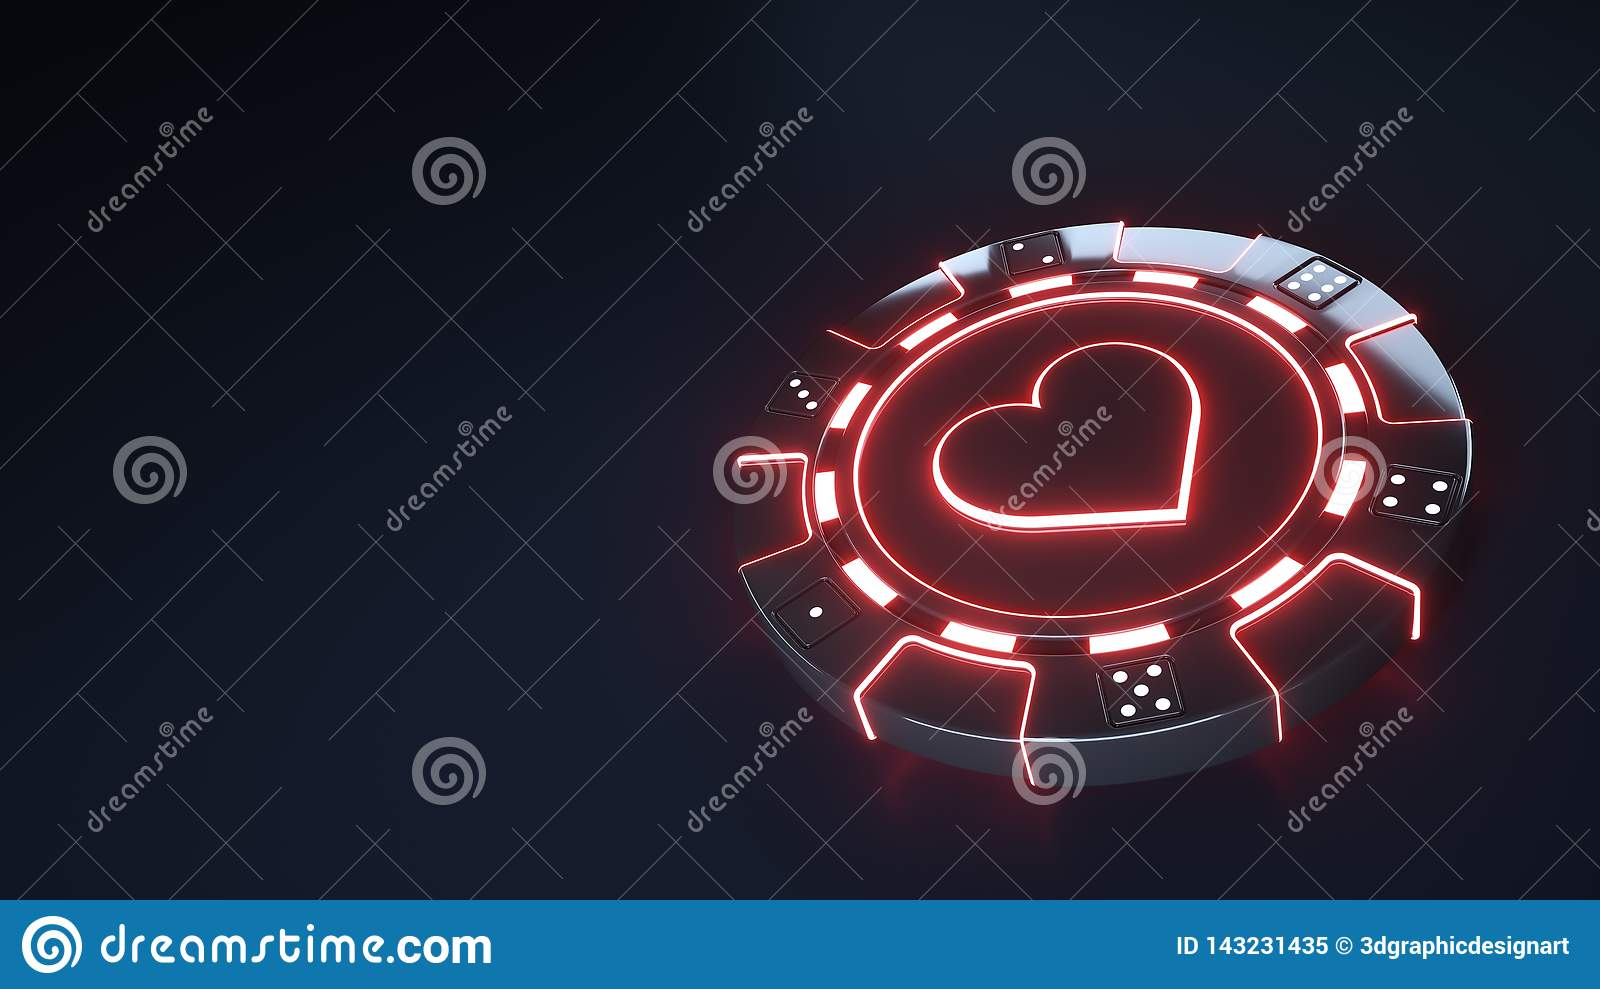 Casino Chip hearts Concept with glowing neon red lights and Dice dots isolated on the black background - 3D Illustration